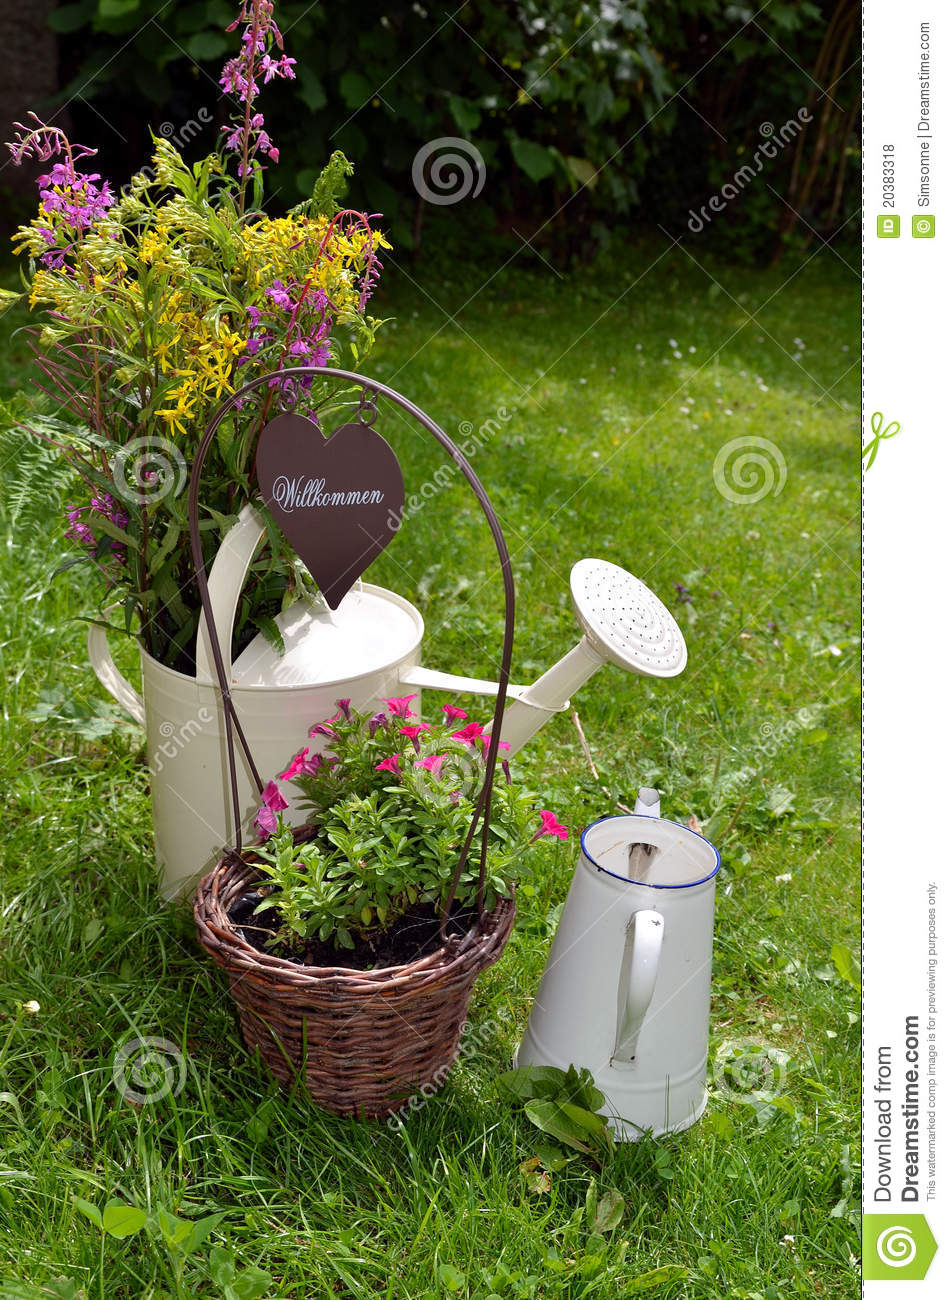 Garden decoration flower heart royalty free stock photos for Flower garden decorations